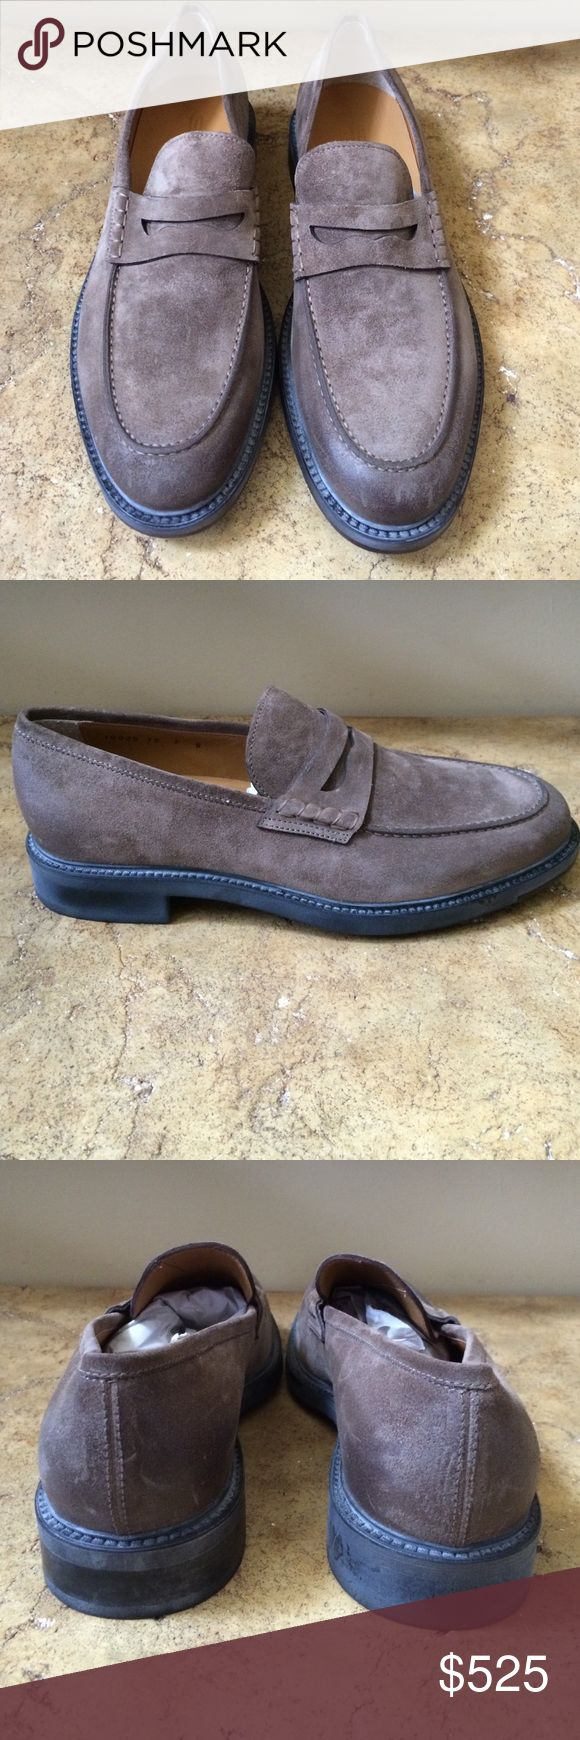 Santoni Men's Brown Suede Loafers Made in Italy Santoni Shoes Loafers & Slip-Ons